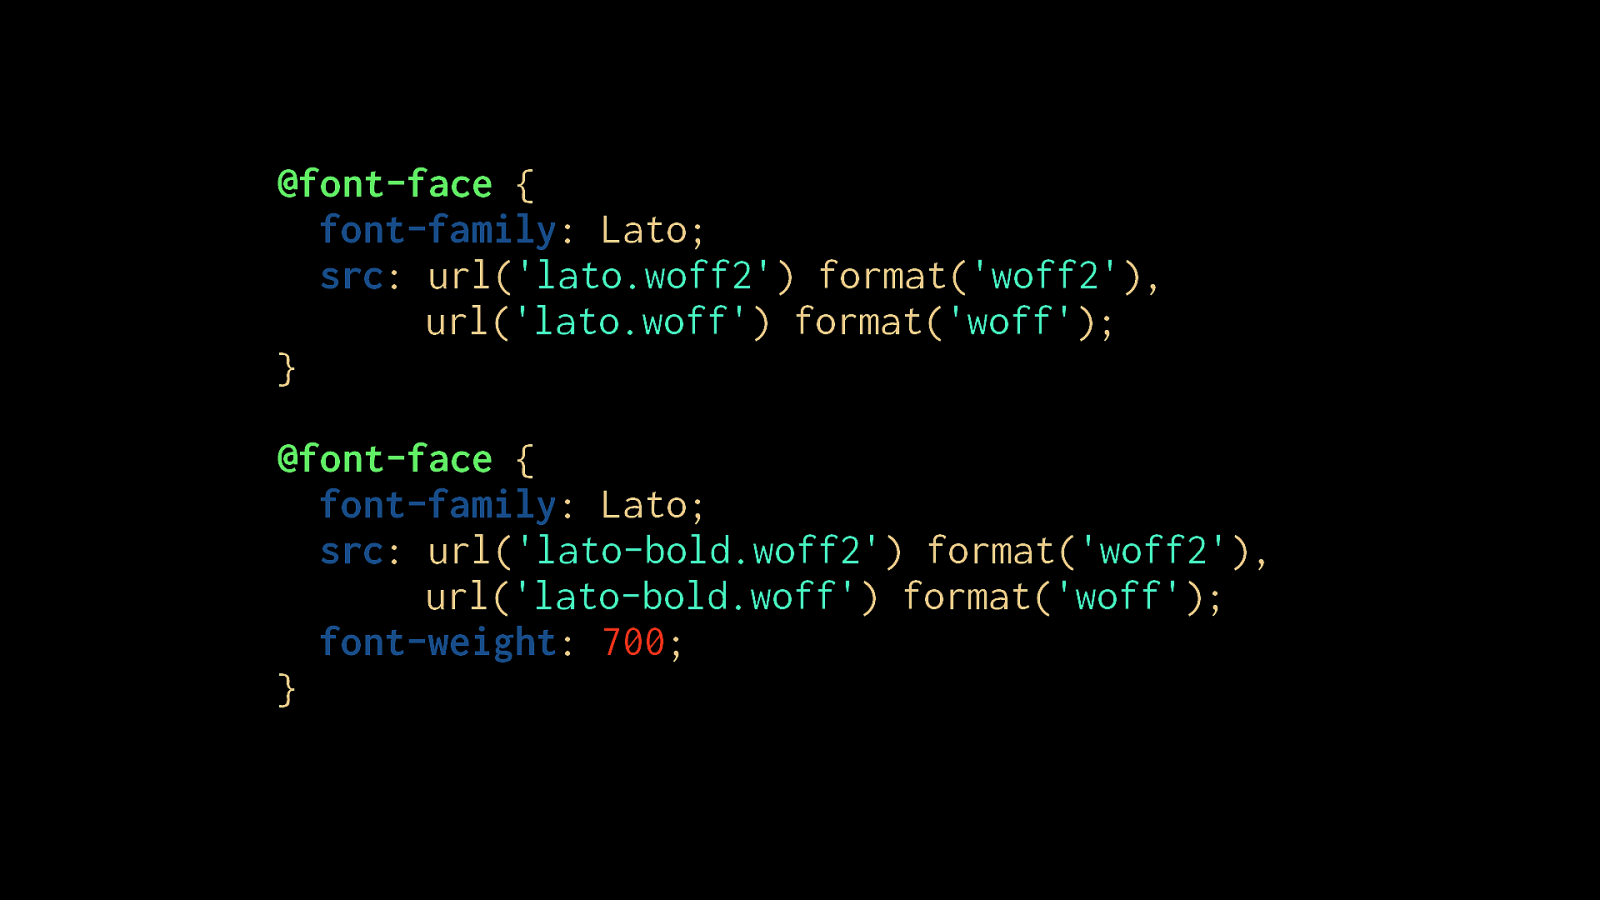 Web Fonts are ▢▢▢ Rocket Science